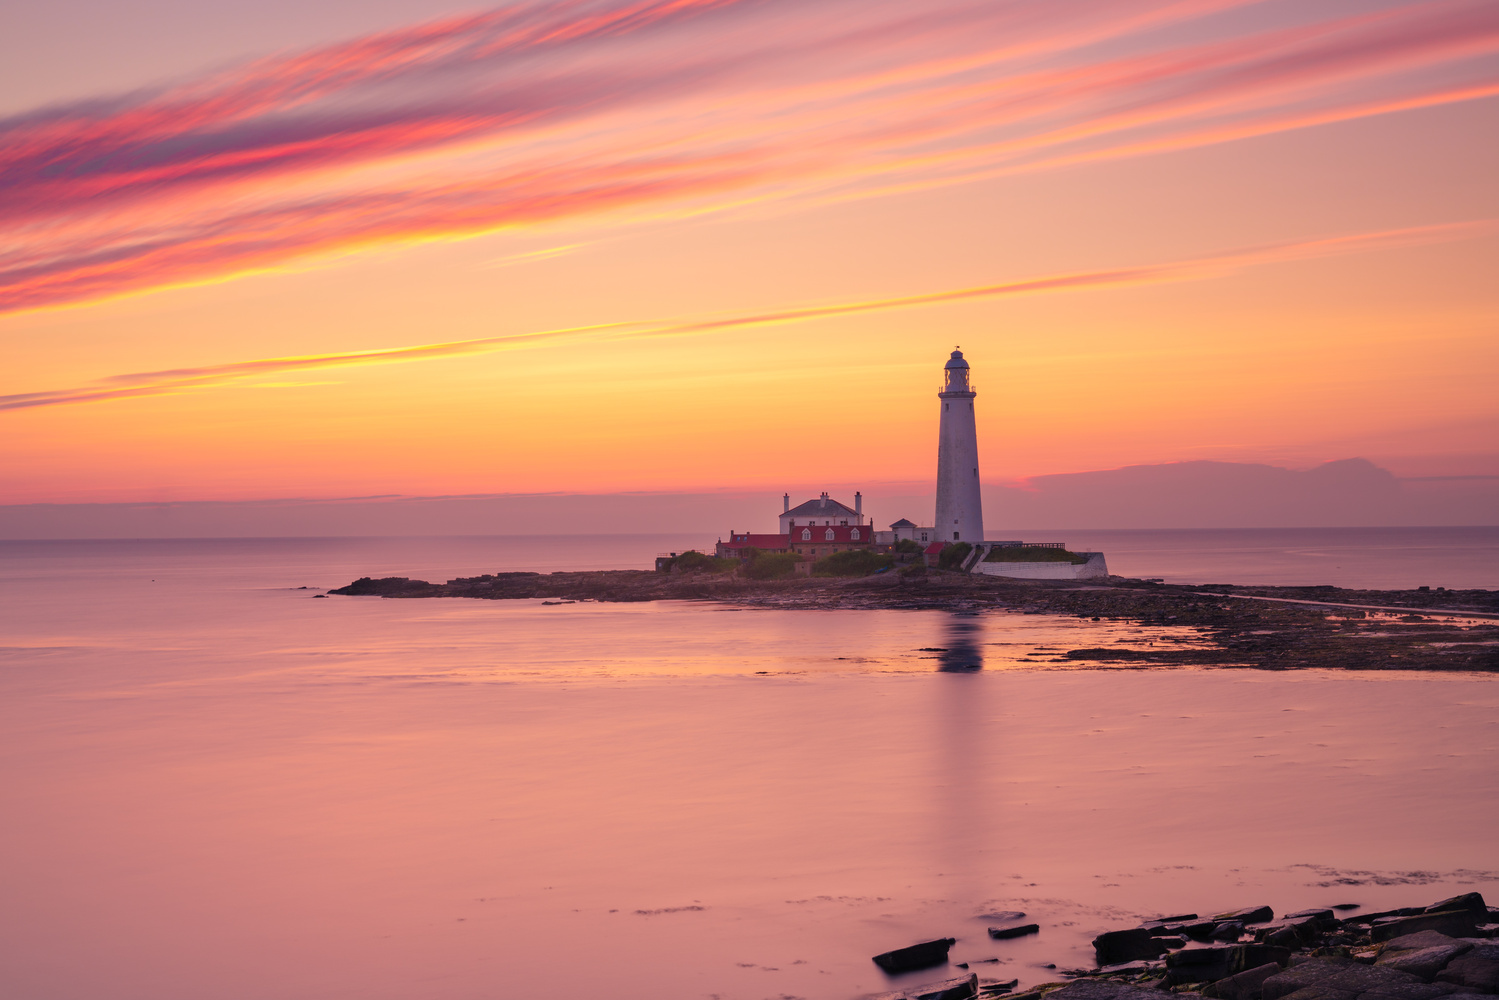 St Mary's Lighthouse Sunrise by Nigel Douglass